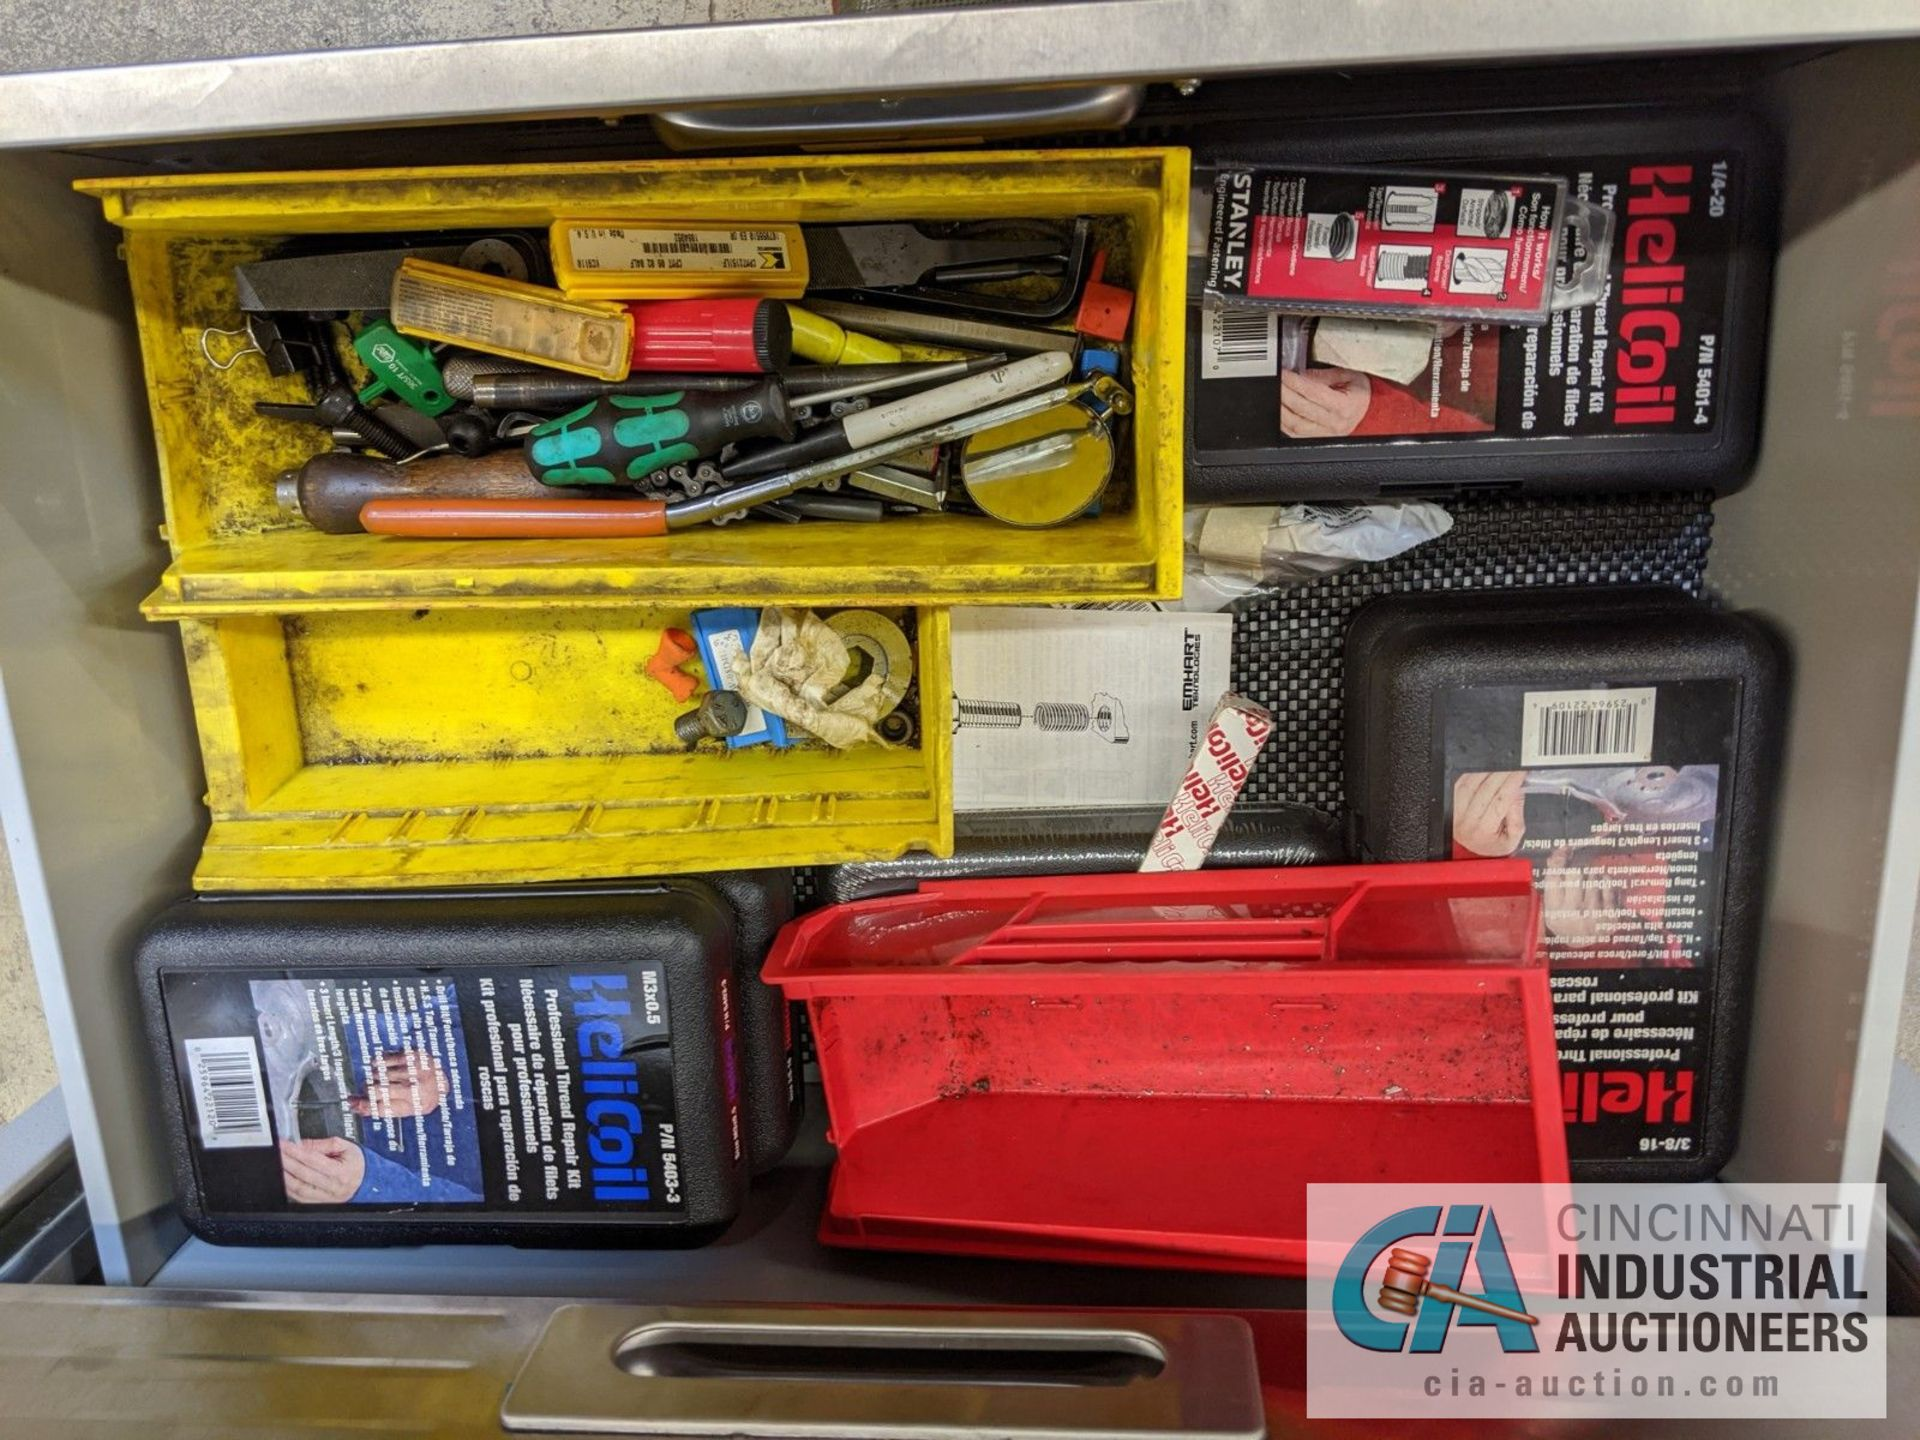 6-DRAWER PORTABLE TOOL BOX WITH CONTENTS - ASSORTED HAND TOOLS, MAPLE TOP - Image 6 of 6